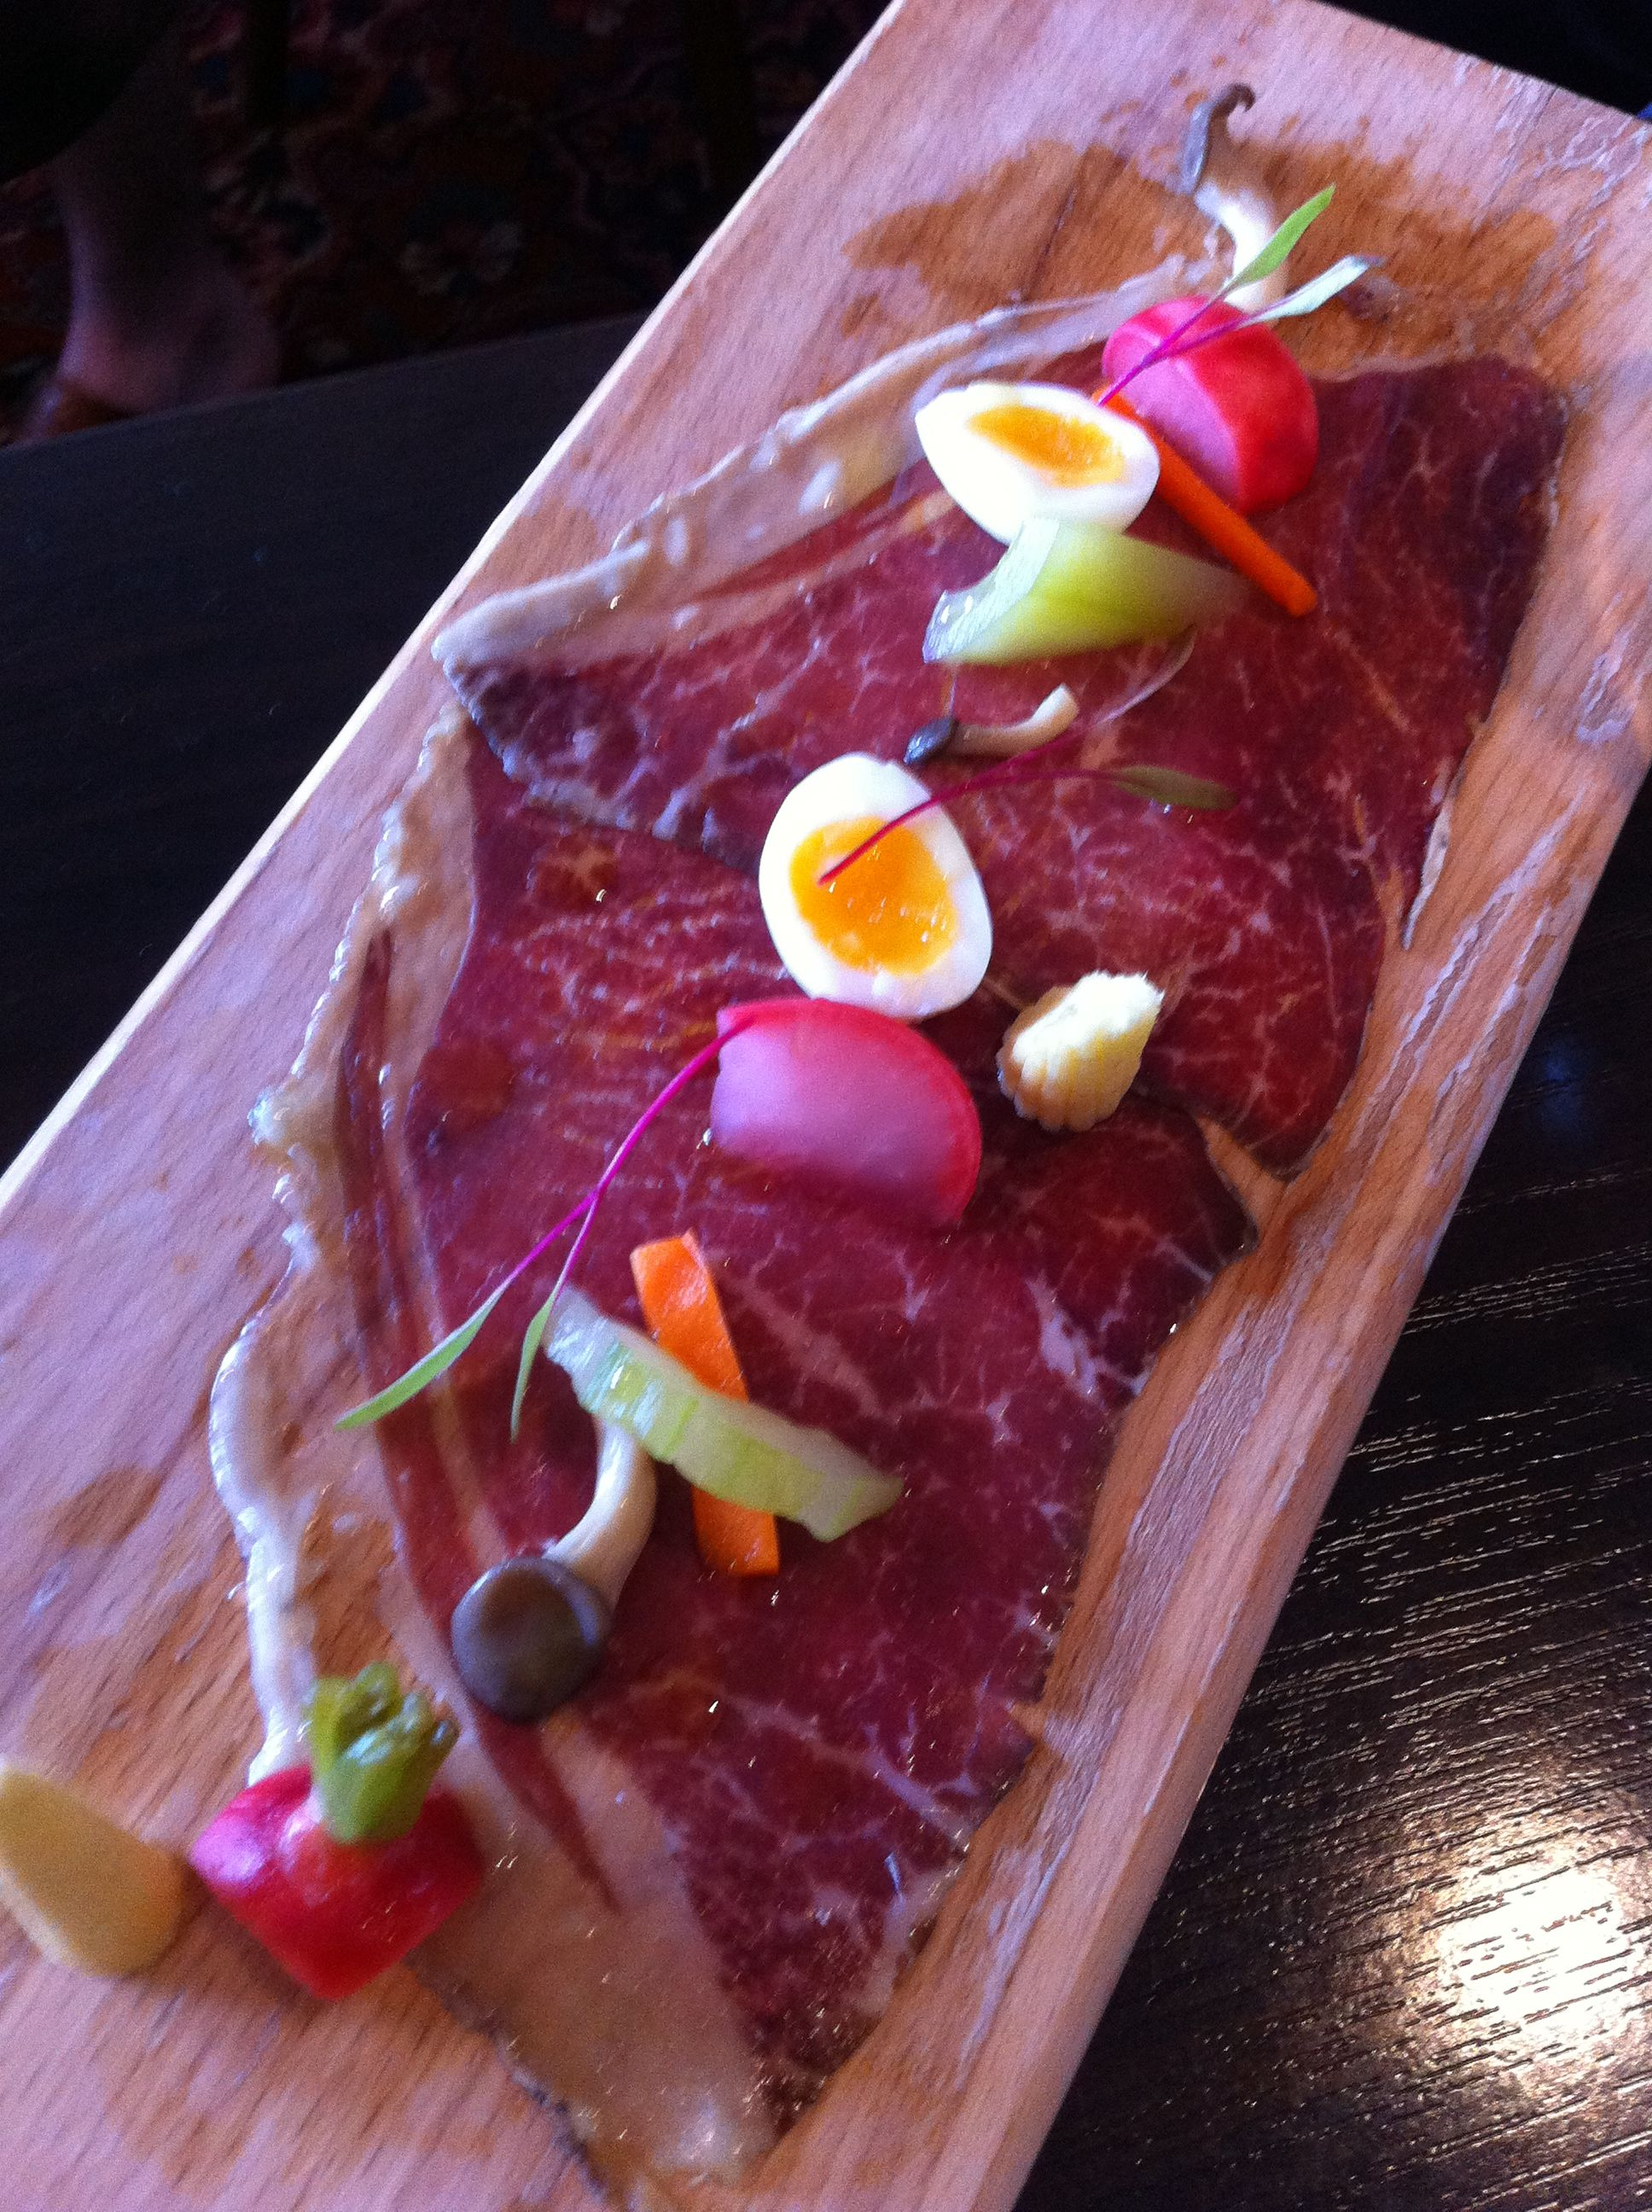 Moondarra Wagyu Bresaola with Pickled Vegetables (Europa Cellars Deli)